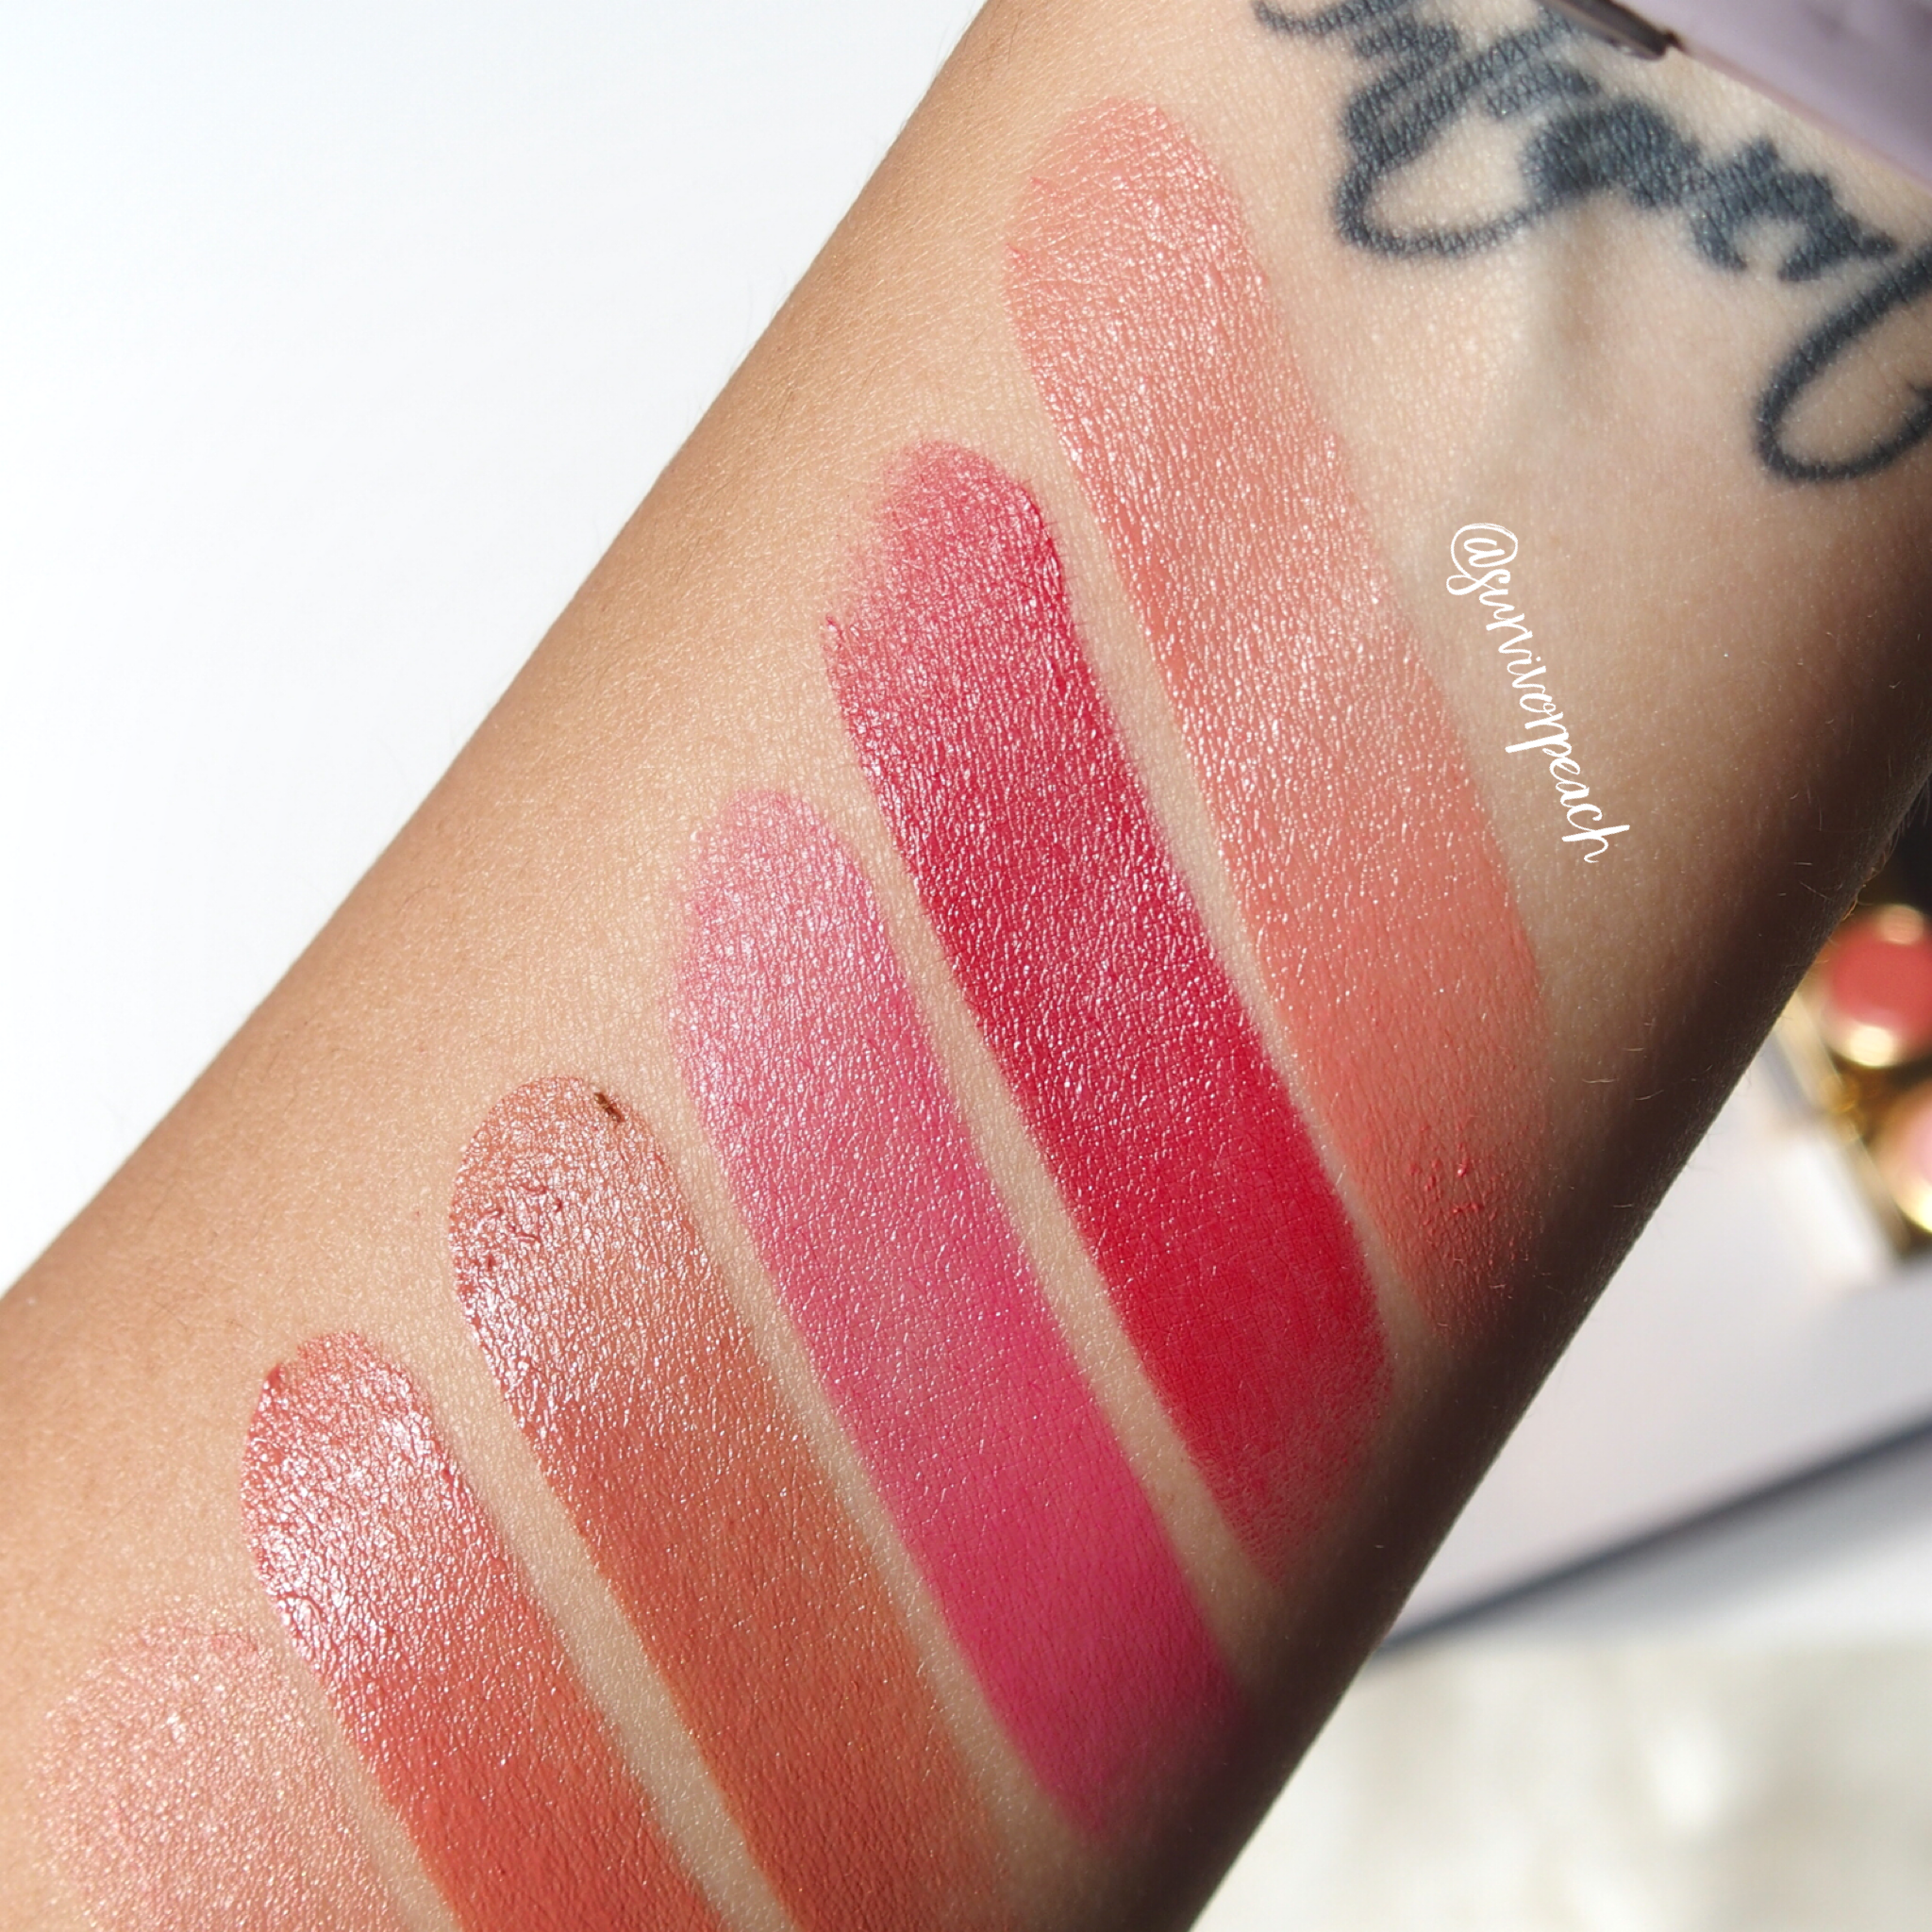 Swatches of the Tom Ford Lip Color Shine in Lavish Indulgent, Ravenous, Nubile, Sultry